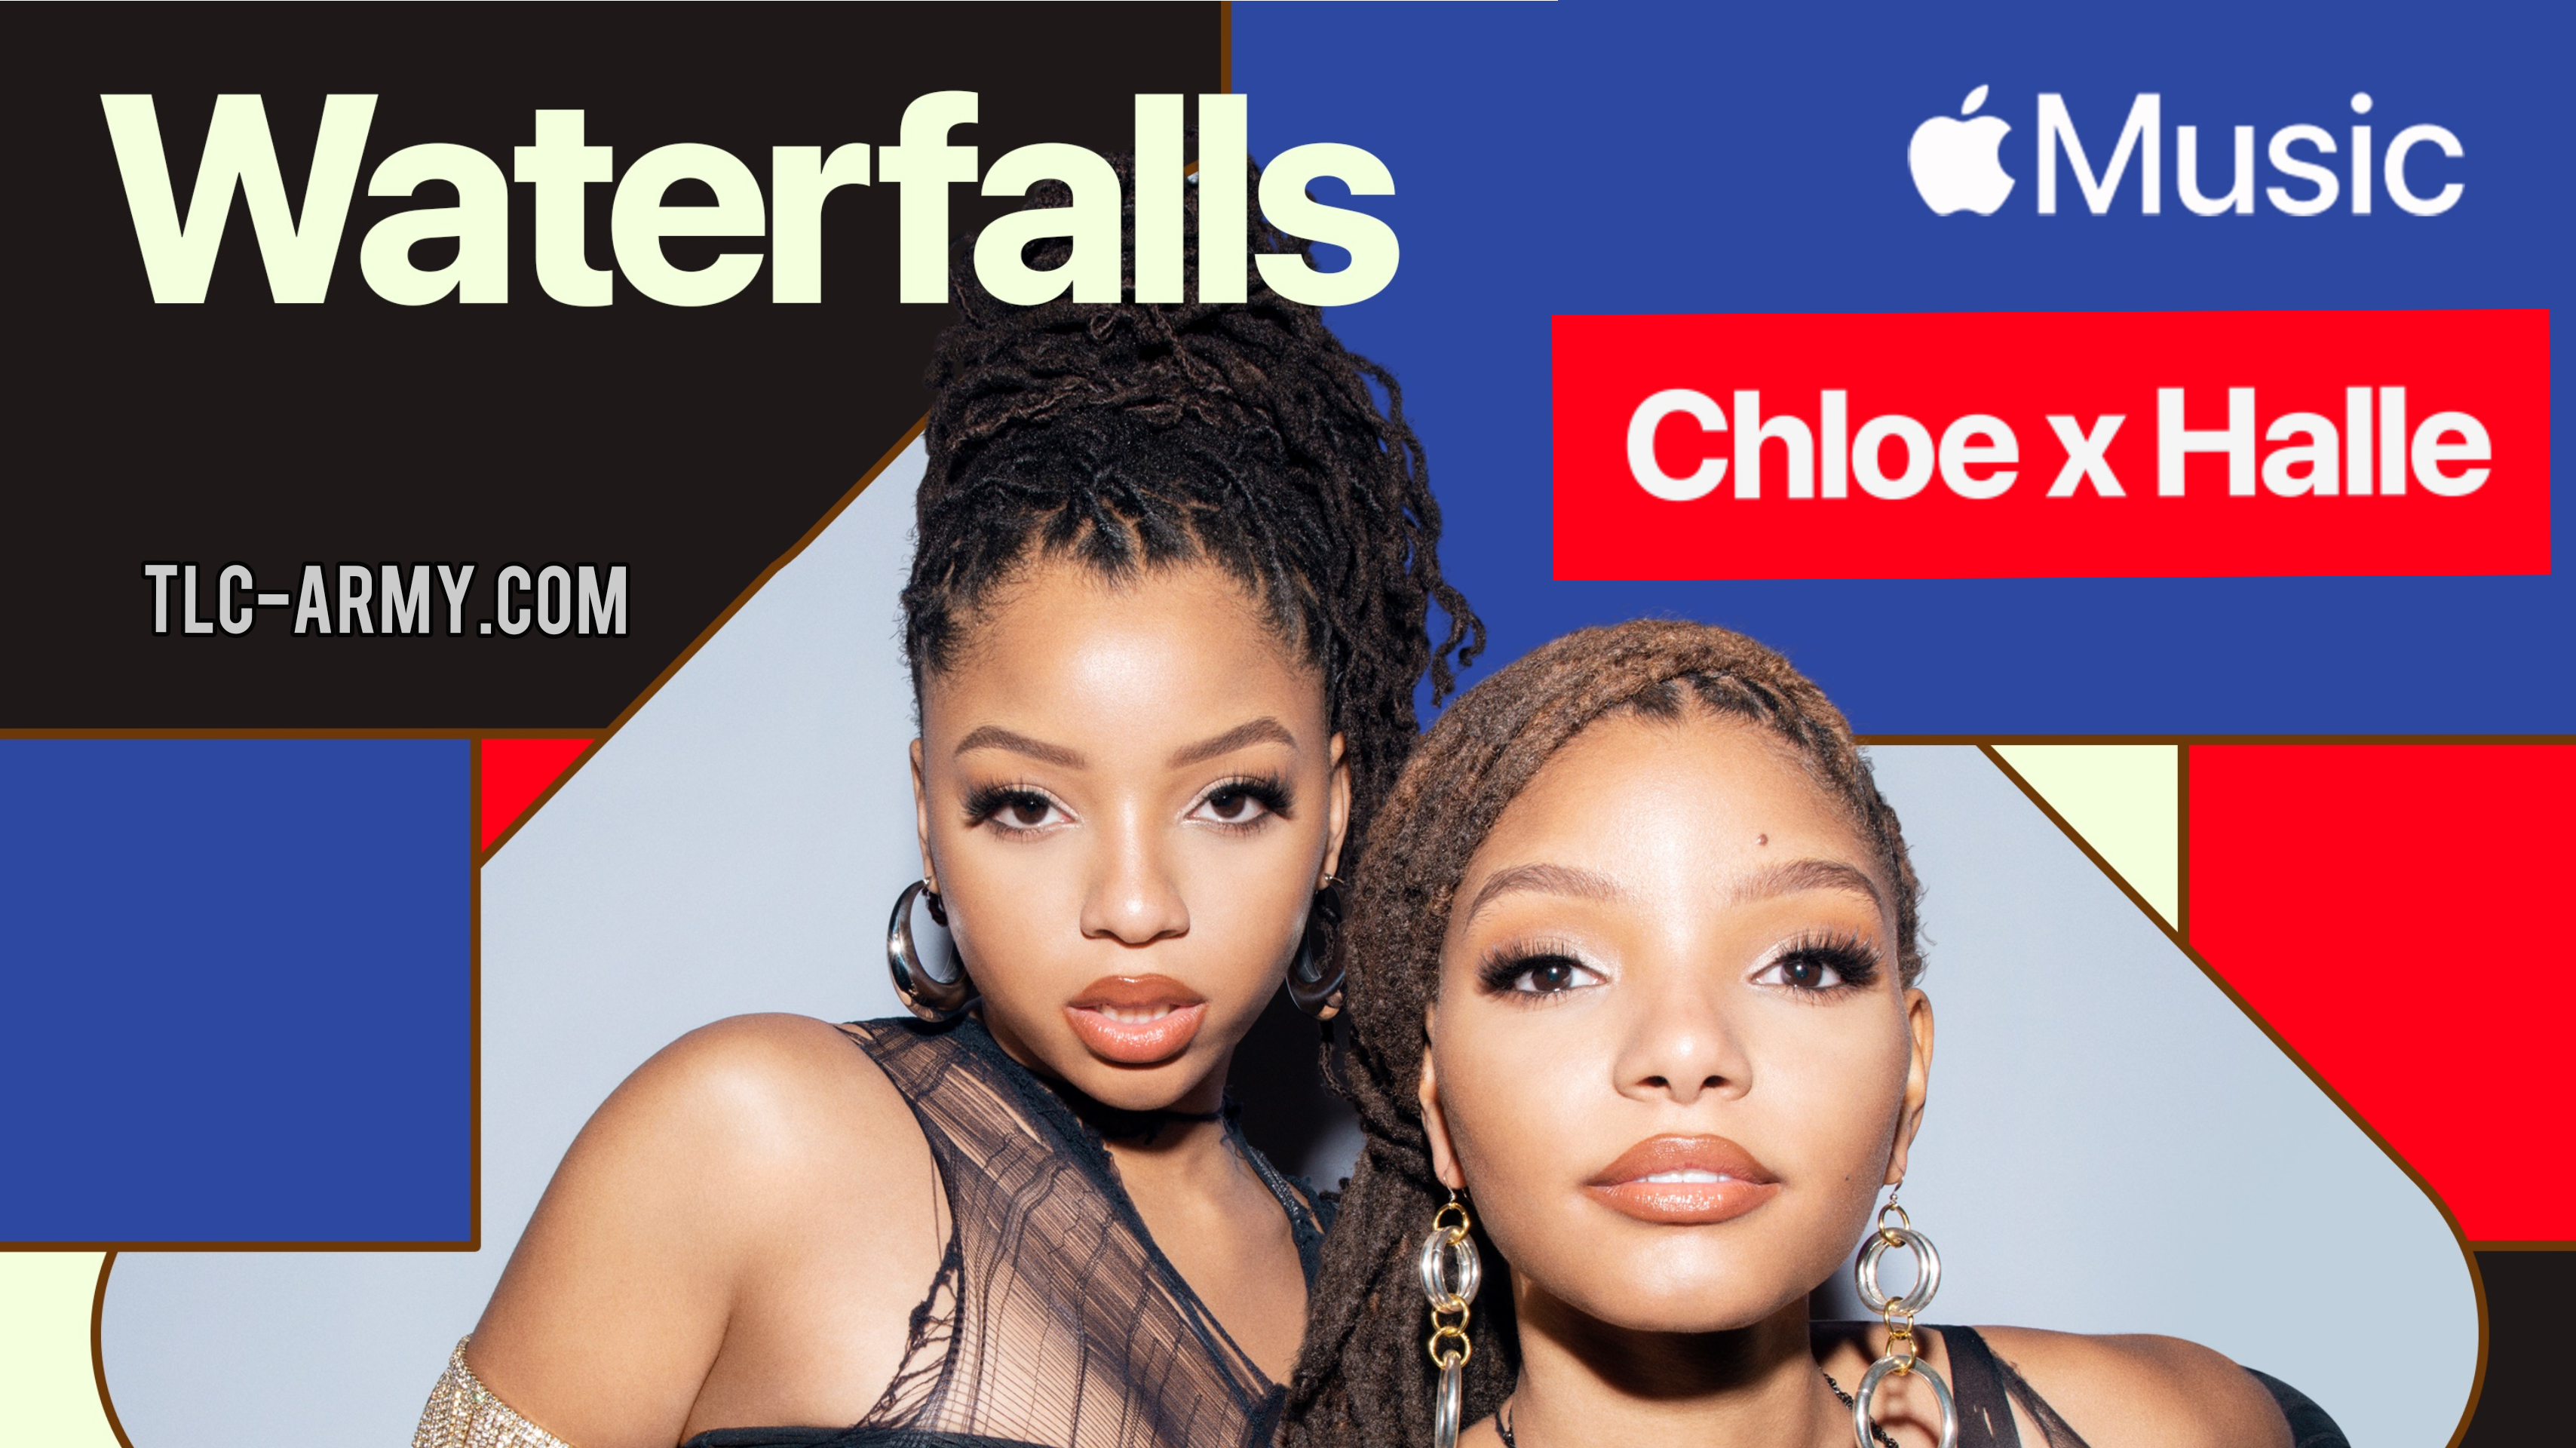 """Chloe x Halle Cover TLC's Classic """"Waterfalls"""" Exclusively for Apple Music"""